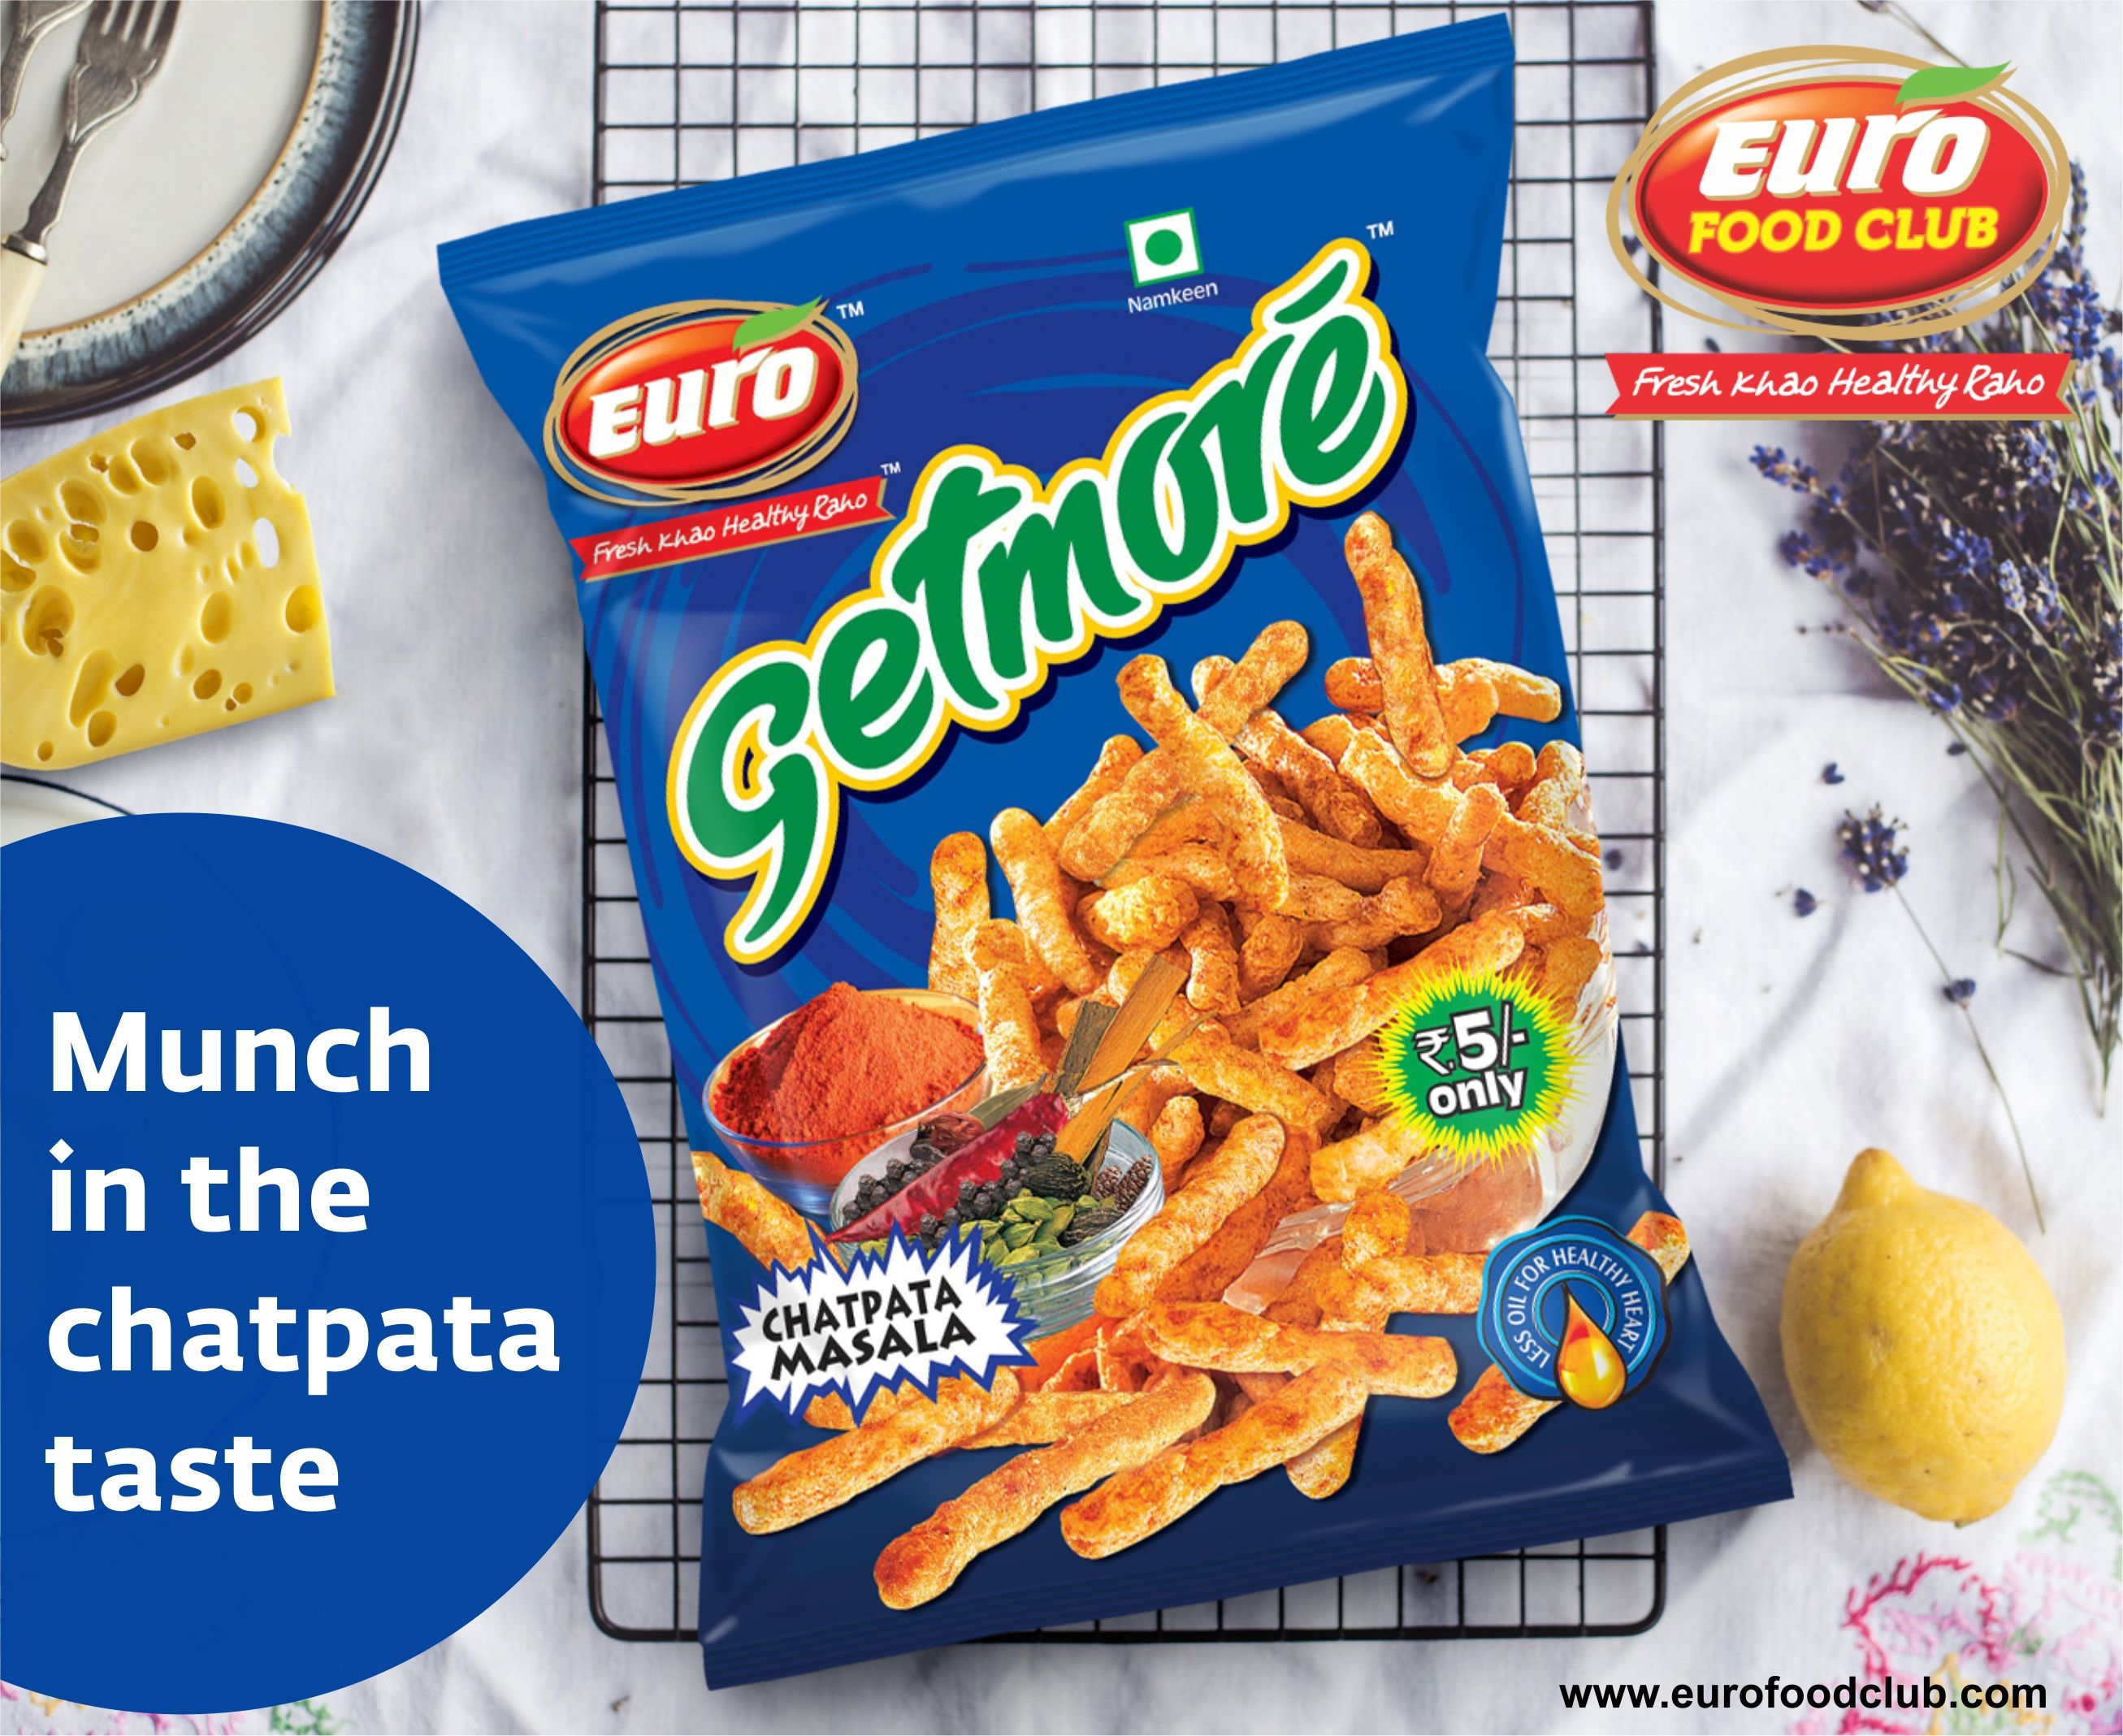 Munch in the chatpata taste of Euro Masala Chips while doing